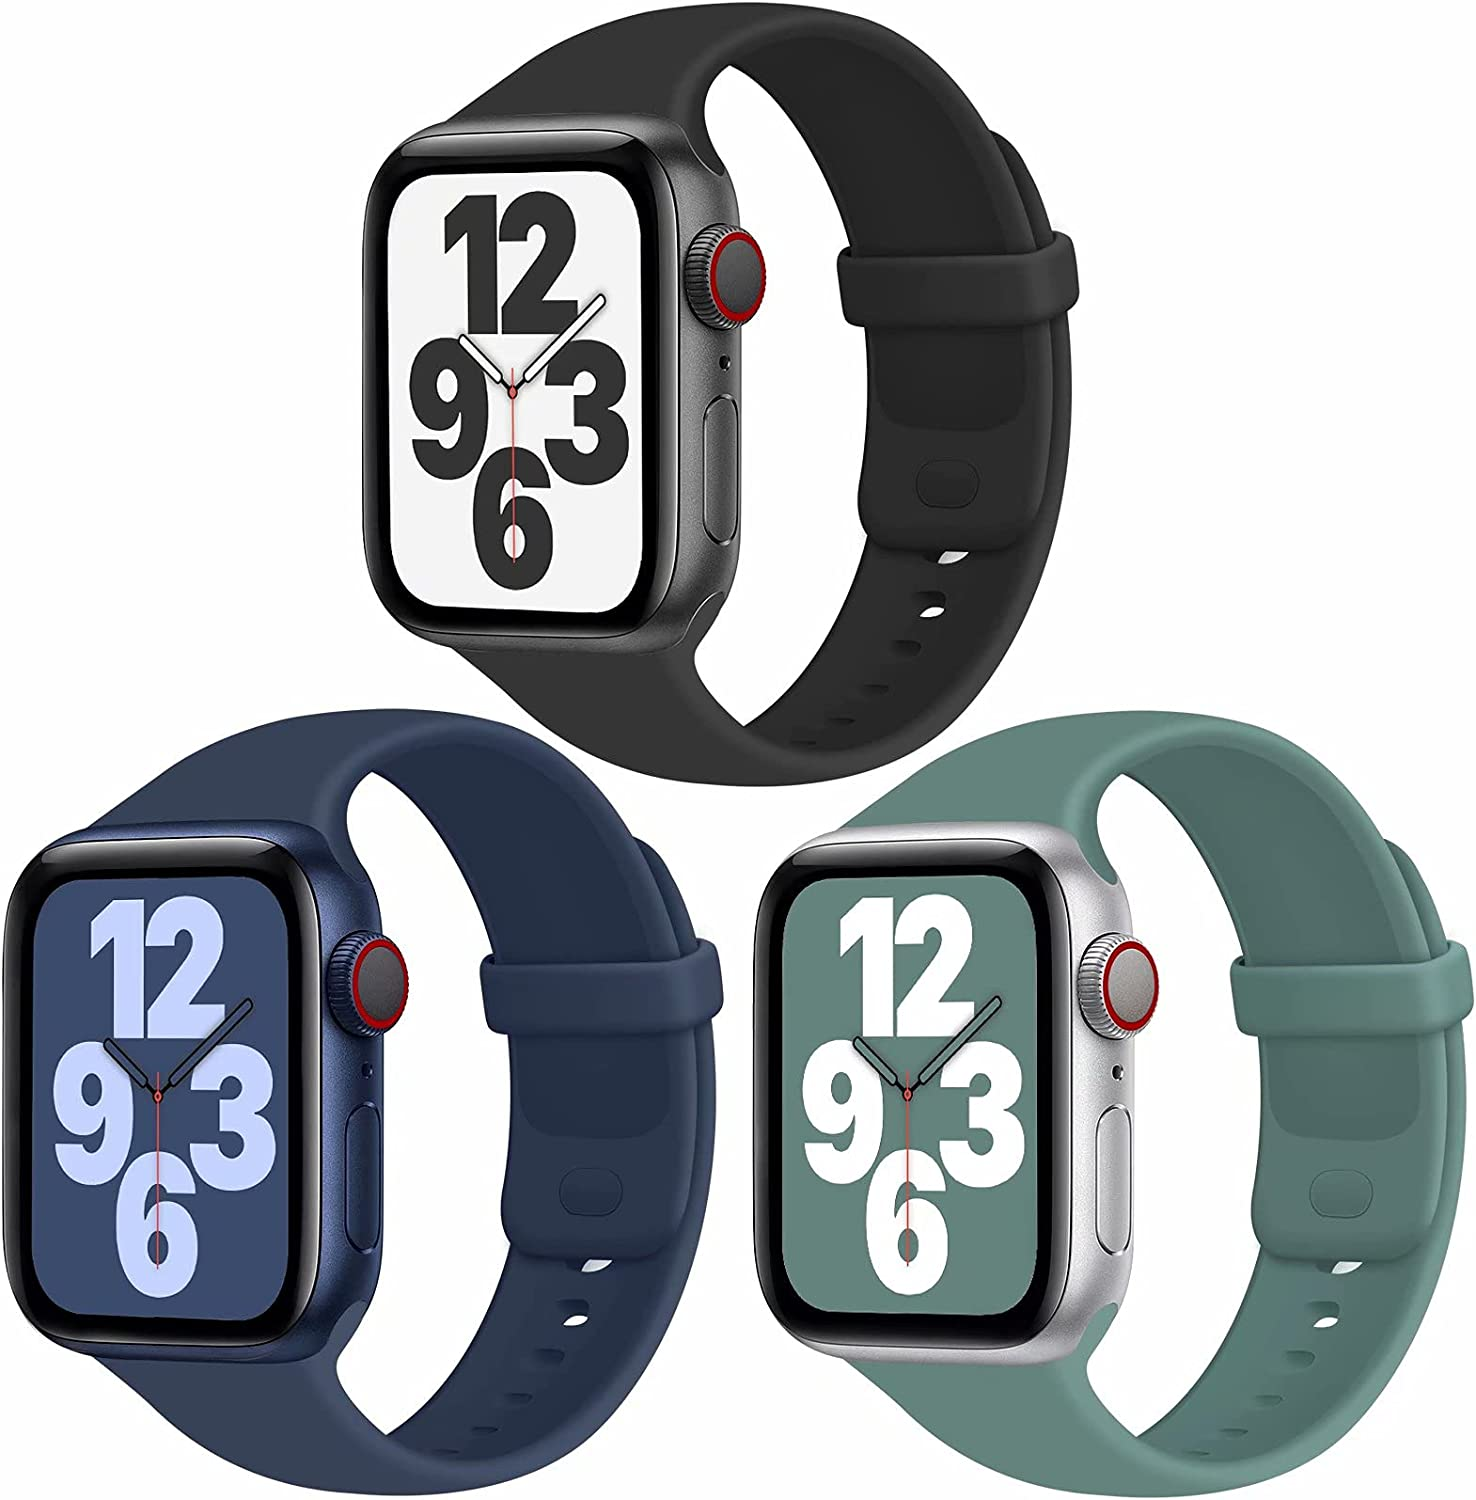 JuQBanke Sport Bands Compatible with Apple Watch Band 38mm 42mm 40mm 44mm, Soft Silicone Sport Band Replacement Strap Compatible with iWatch Series SE 6 5 4 3 2 1 Women Men (C 42mm 44mm)